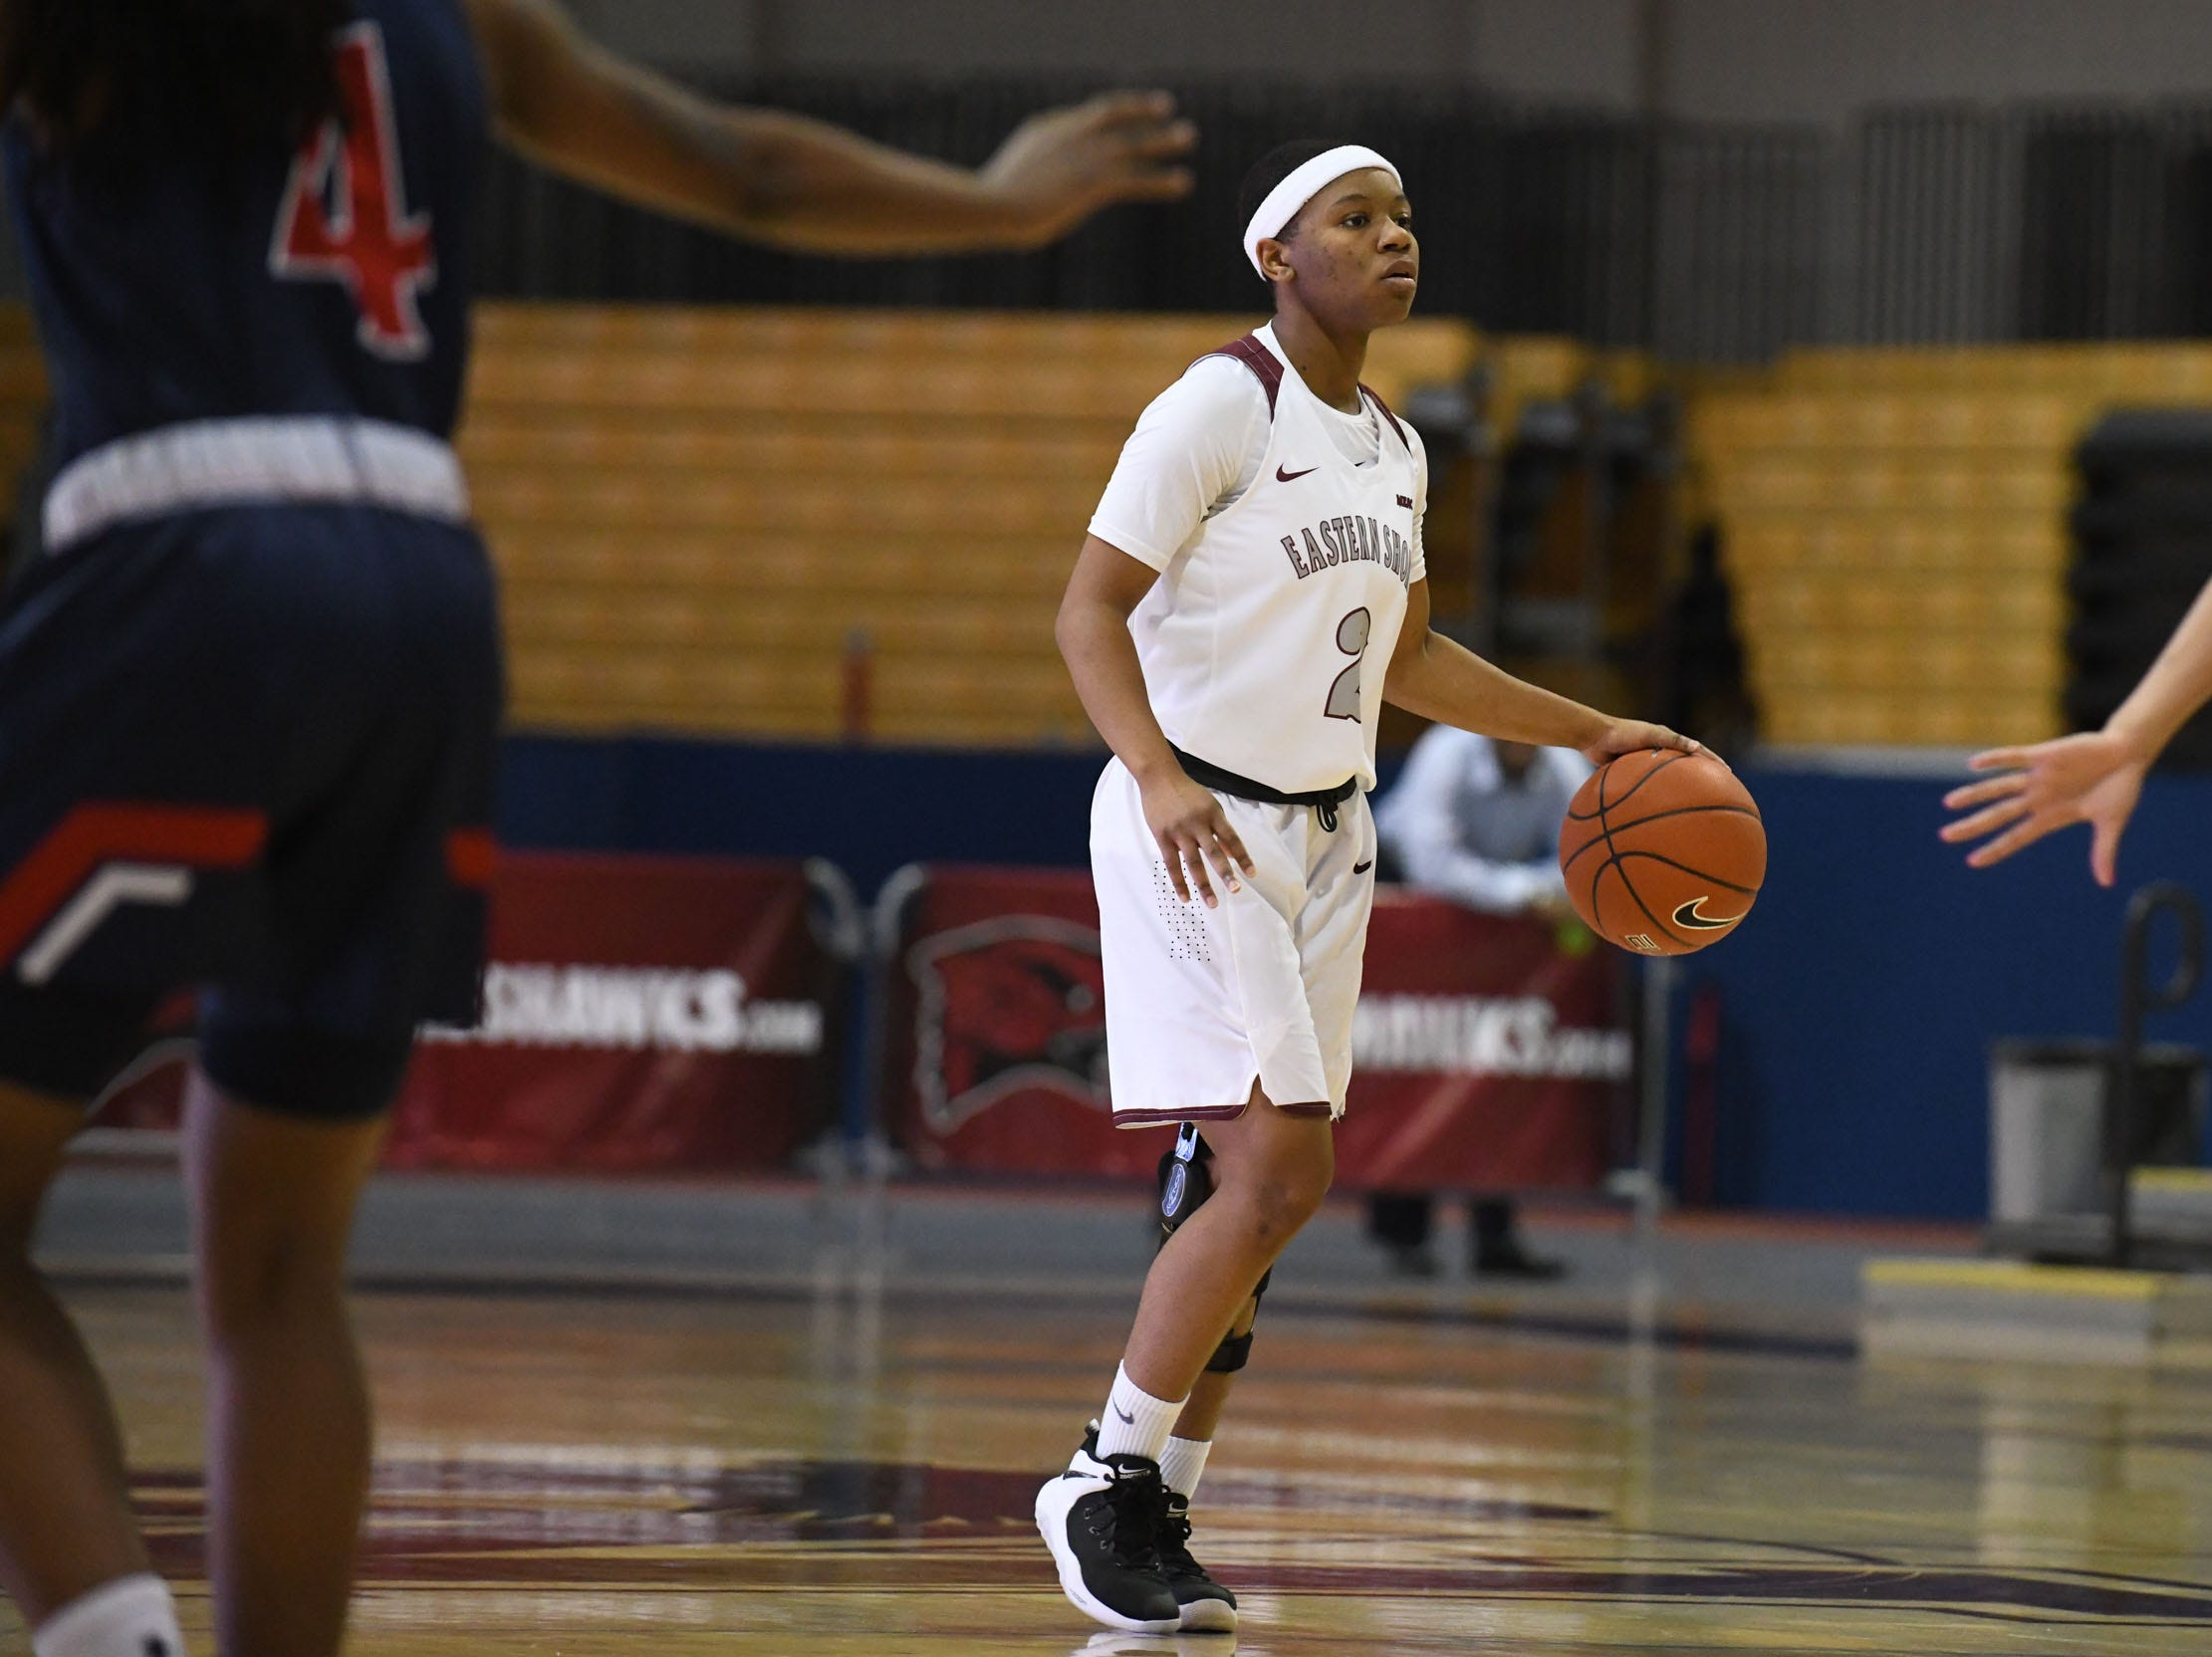 Maryland Eastern Shore's Ciani Byron sets up the offense during the game against Howard University on Monday, Jan 7, 2018.